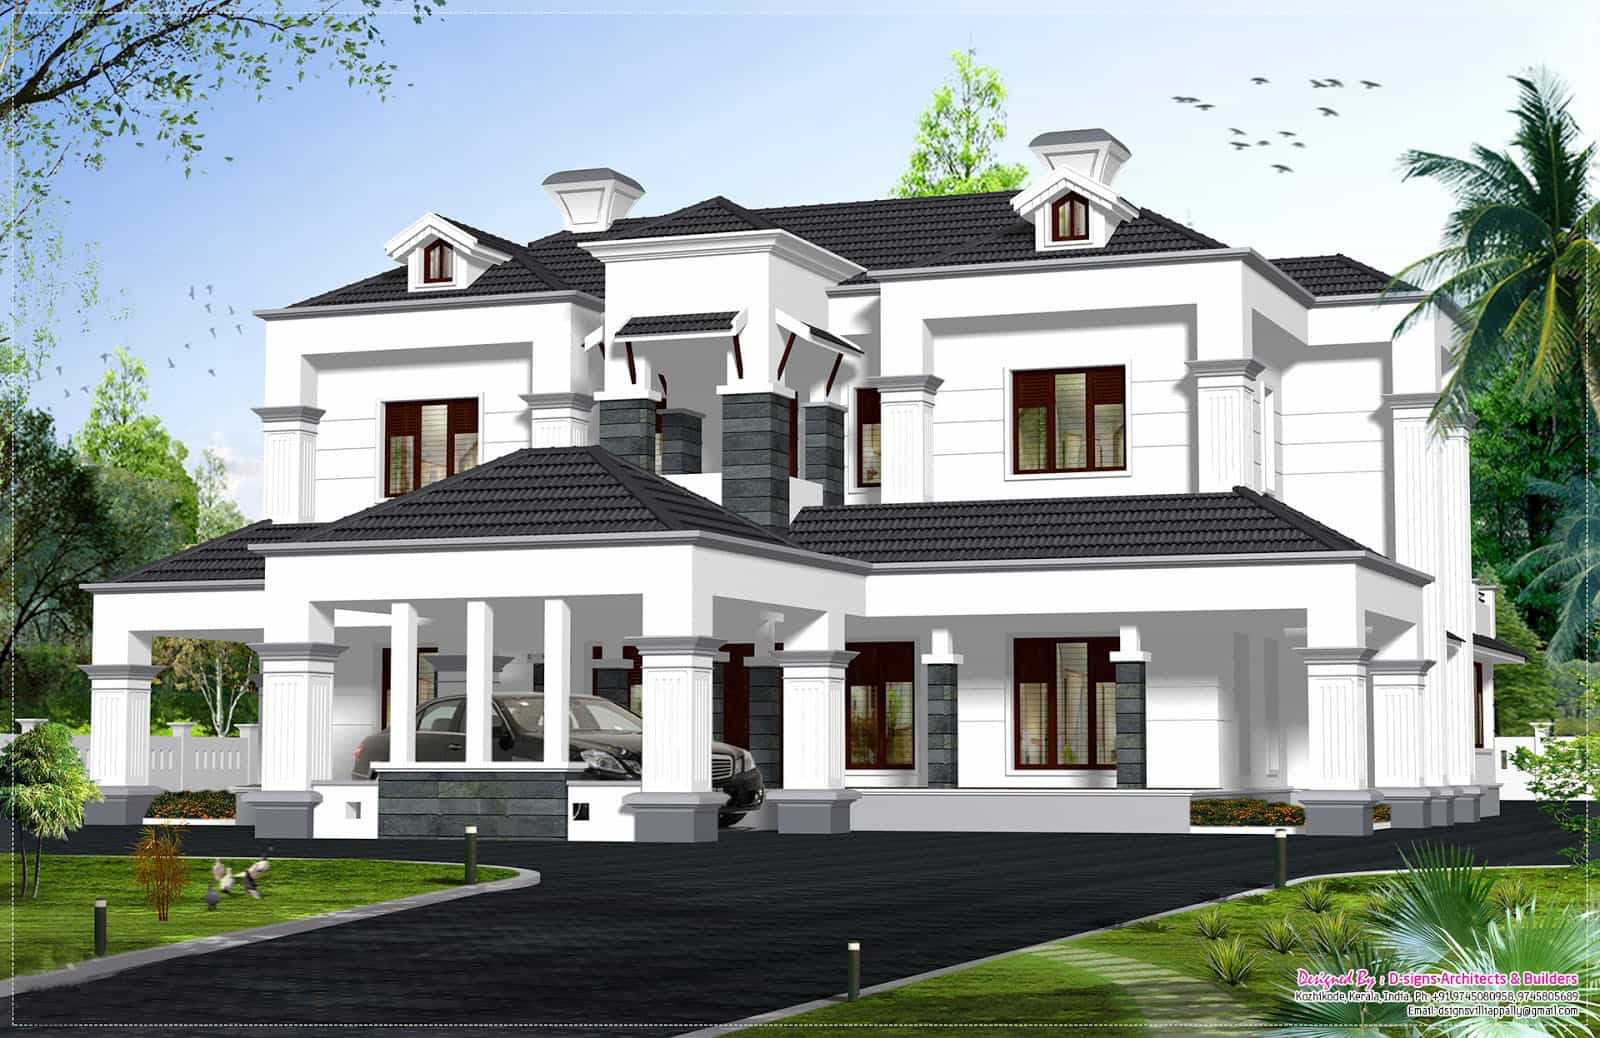 Low cost house in kerala with plan photos 991 sq ft khp for Homes models and plans